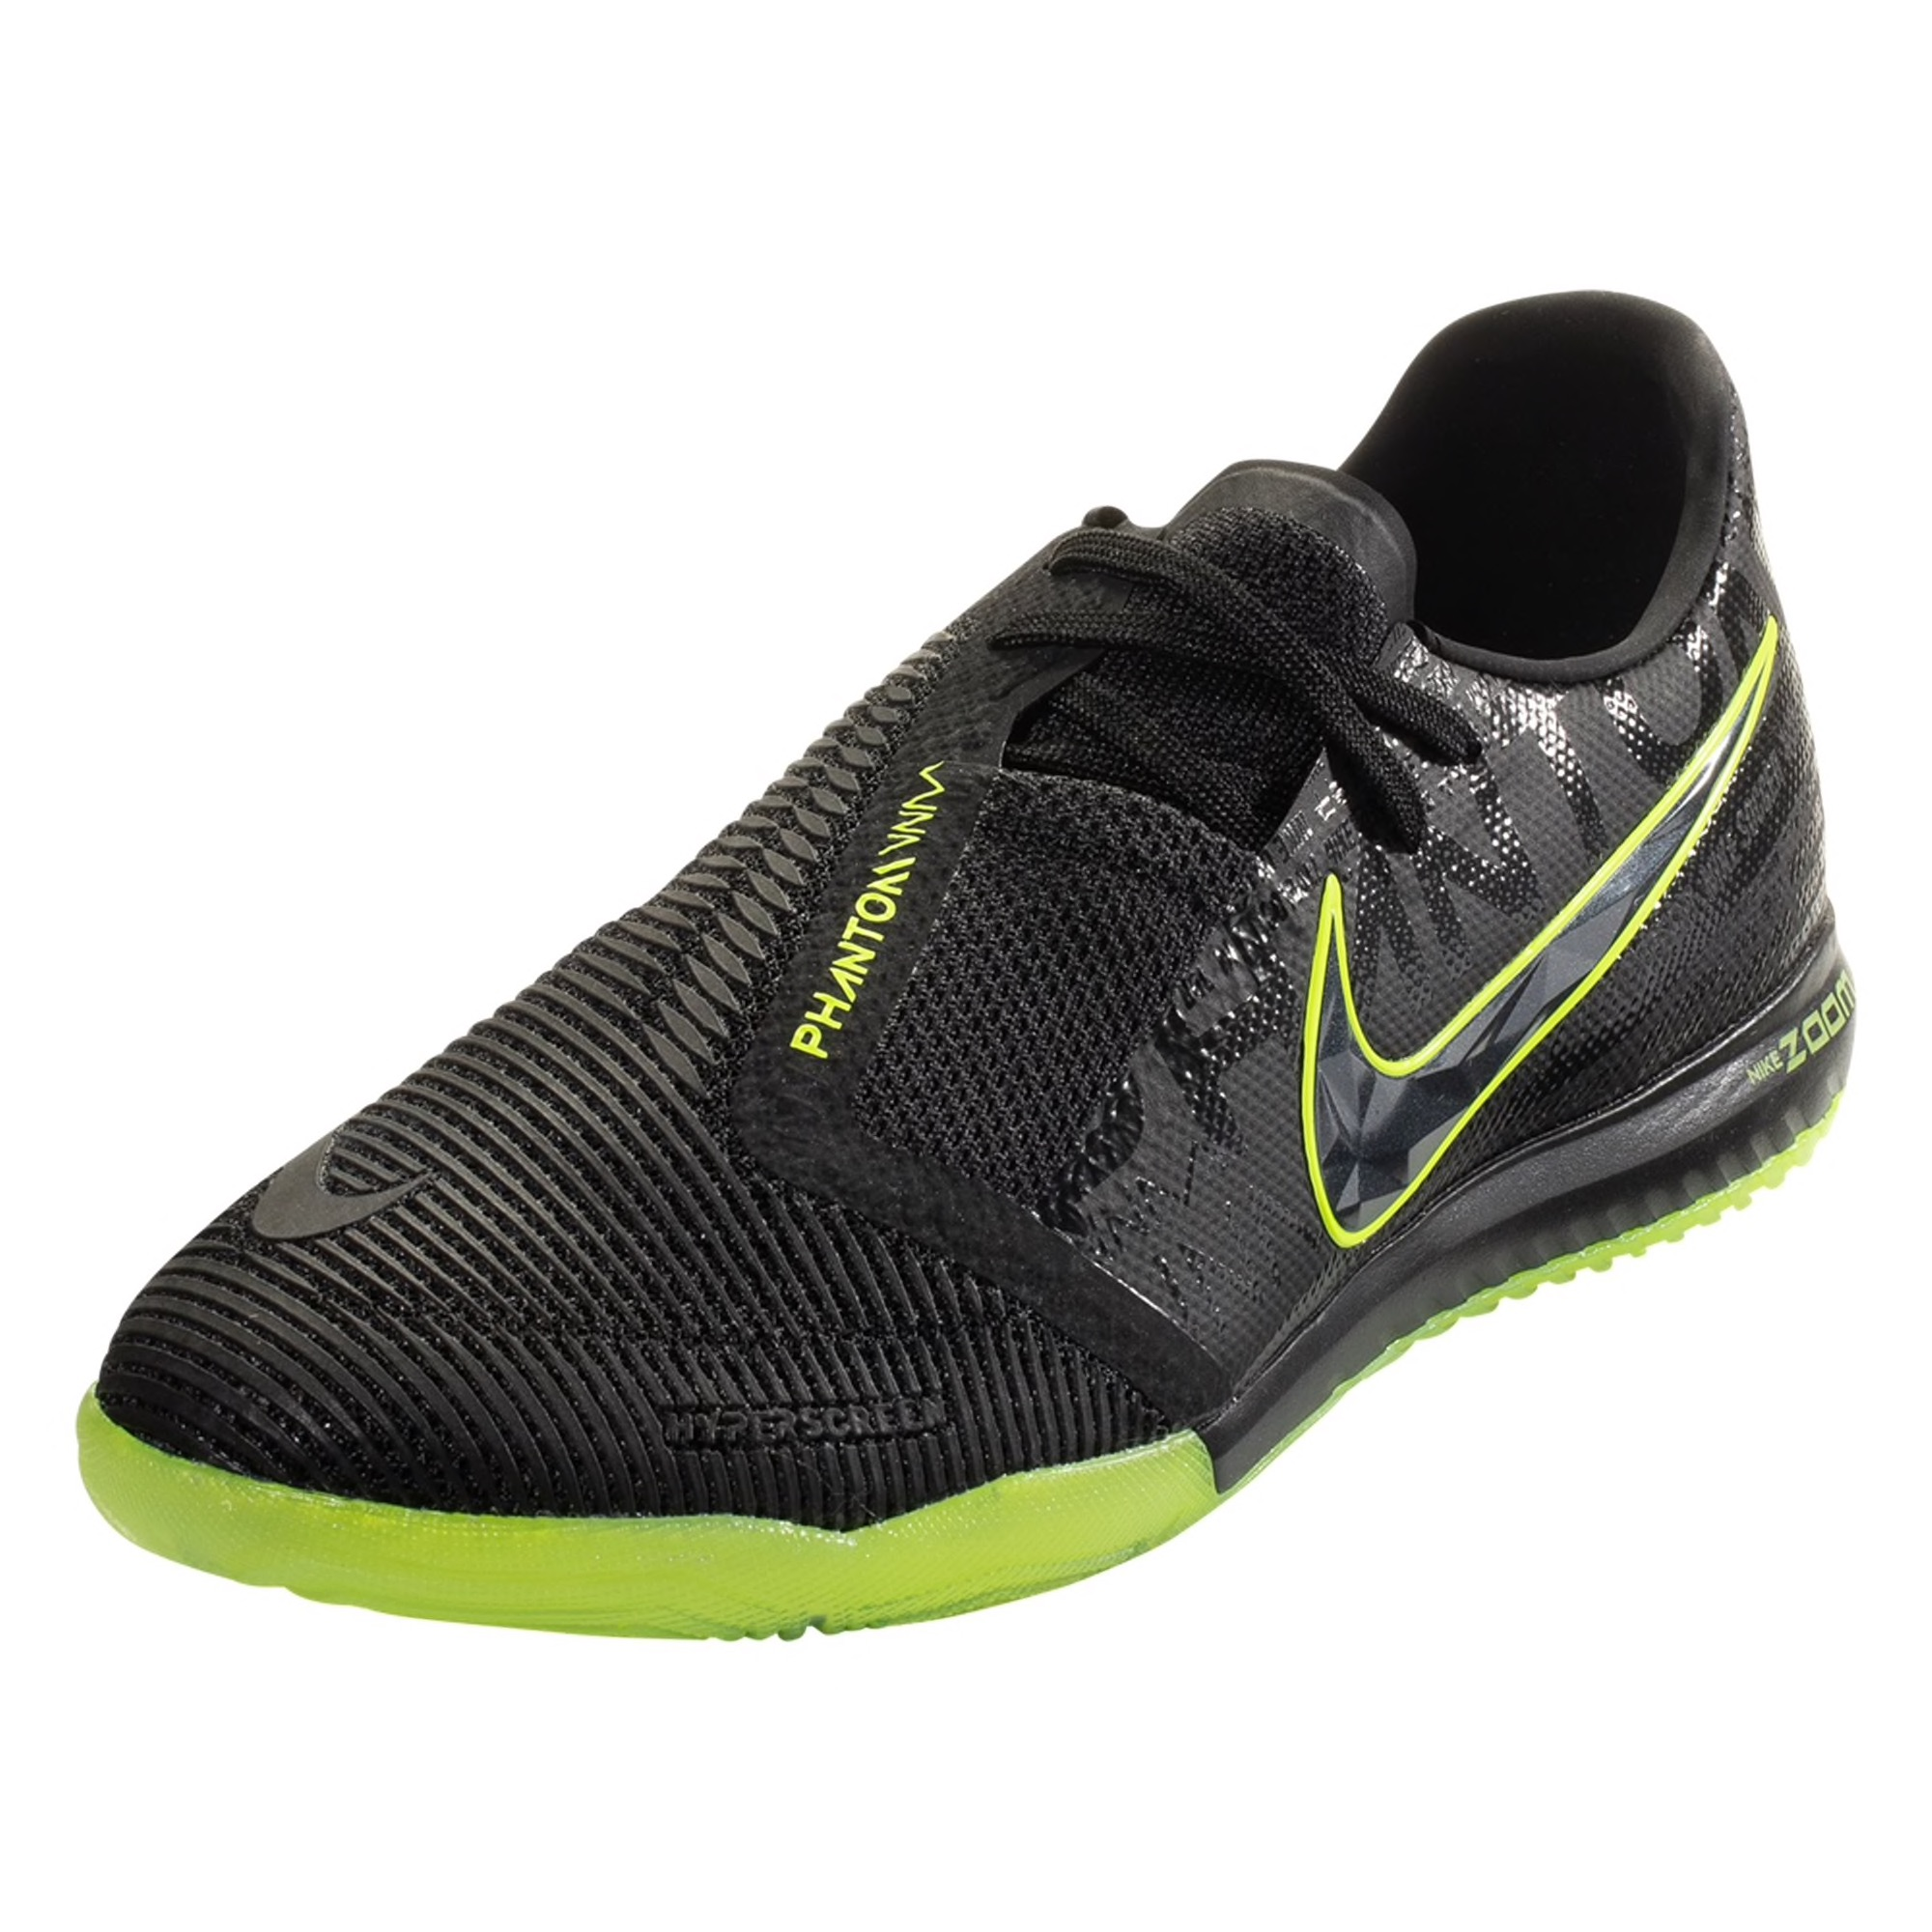 Nike Zoom Phantom Venom Pro IC Indoor Soccer Shoe - Black / Black / Volt